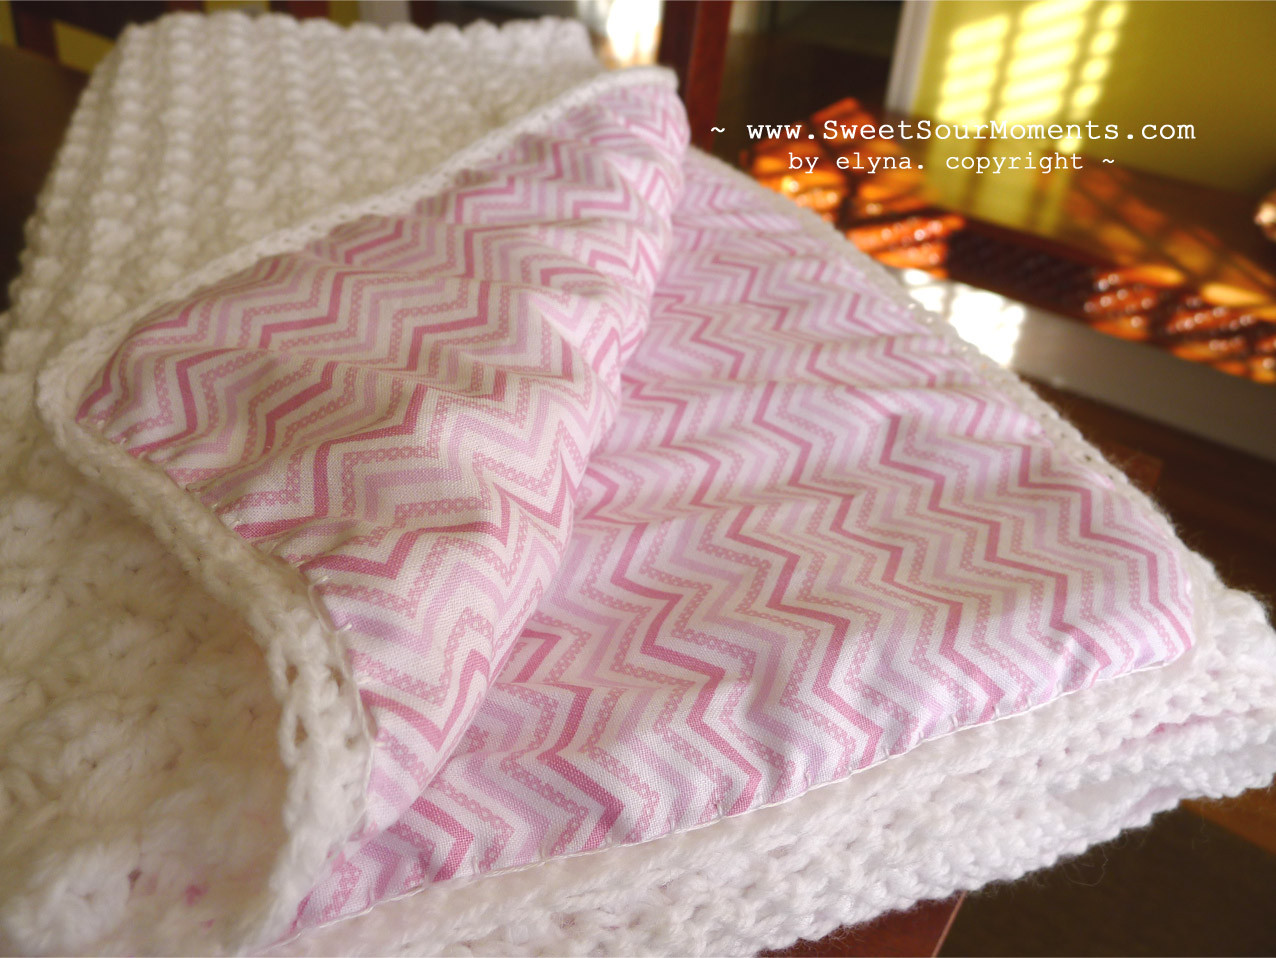 Baby Afghan Inspirational Cotton Candy Baby Blanket – Diy Crochet Of Attractive 50 Pics Baby Afghan